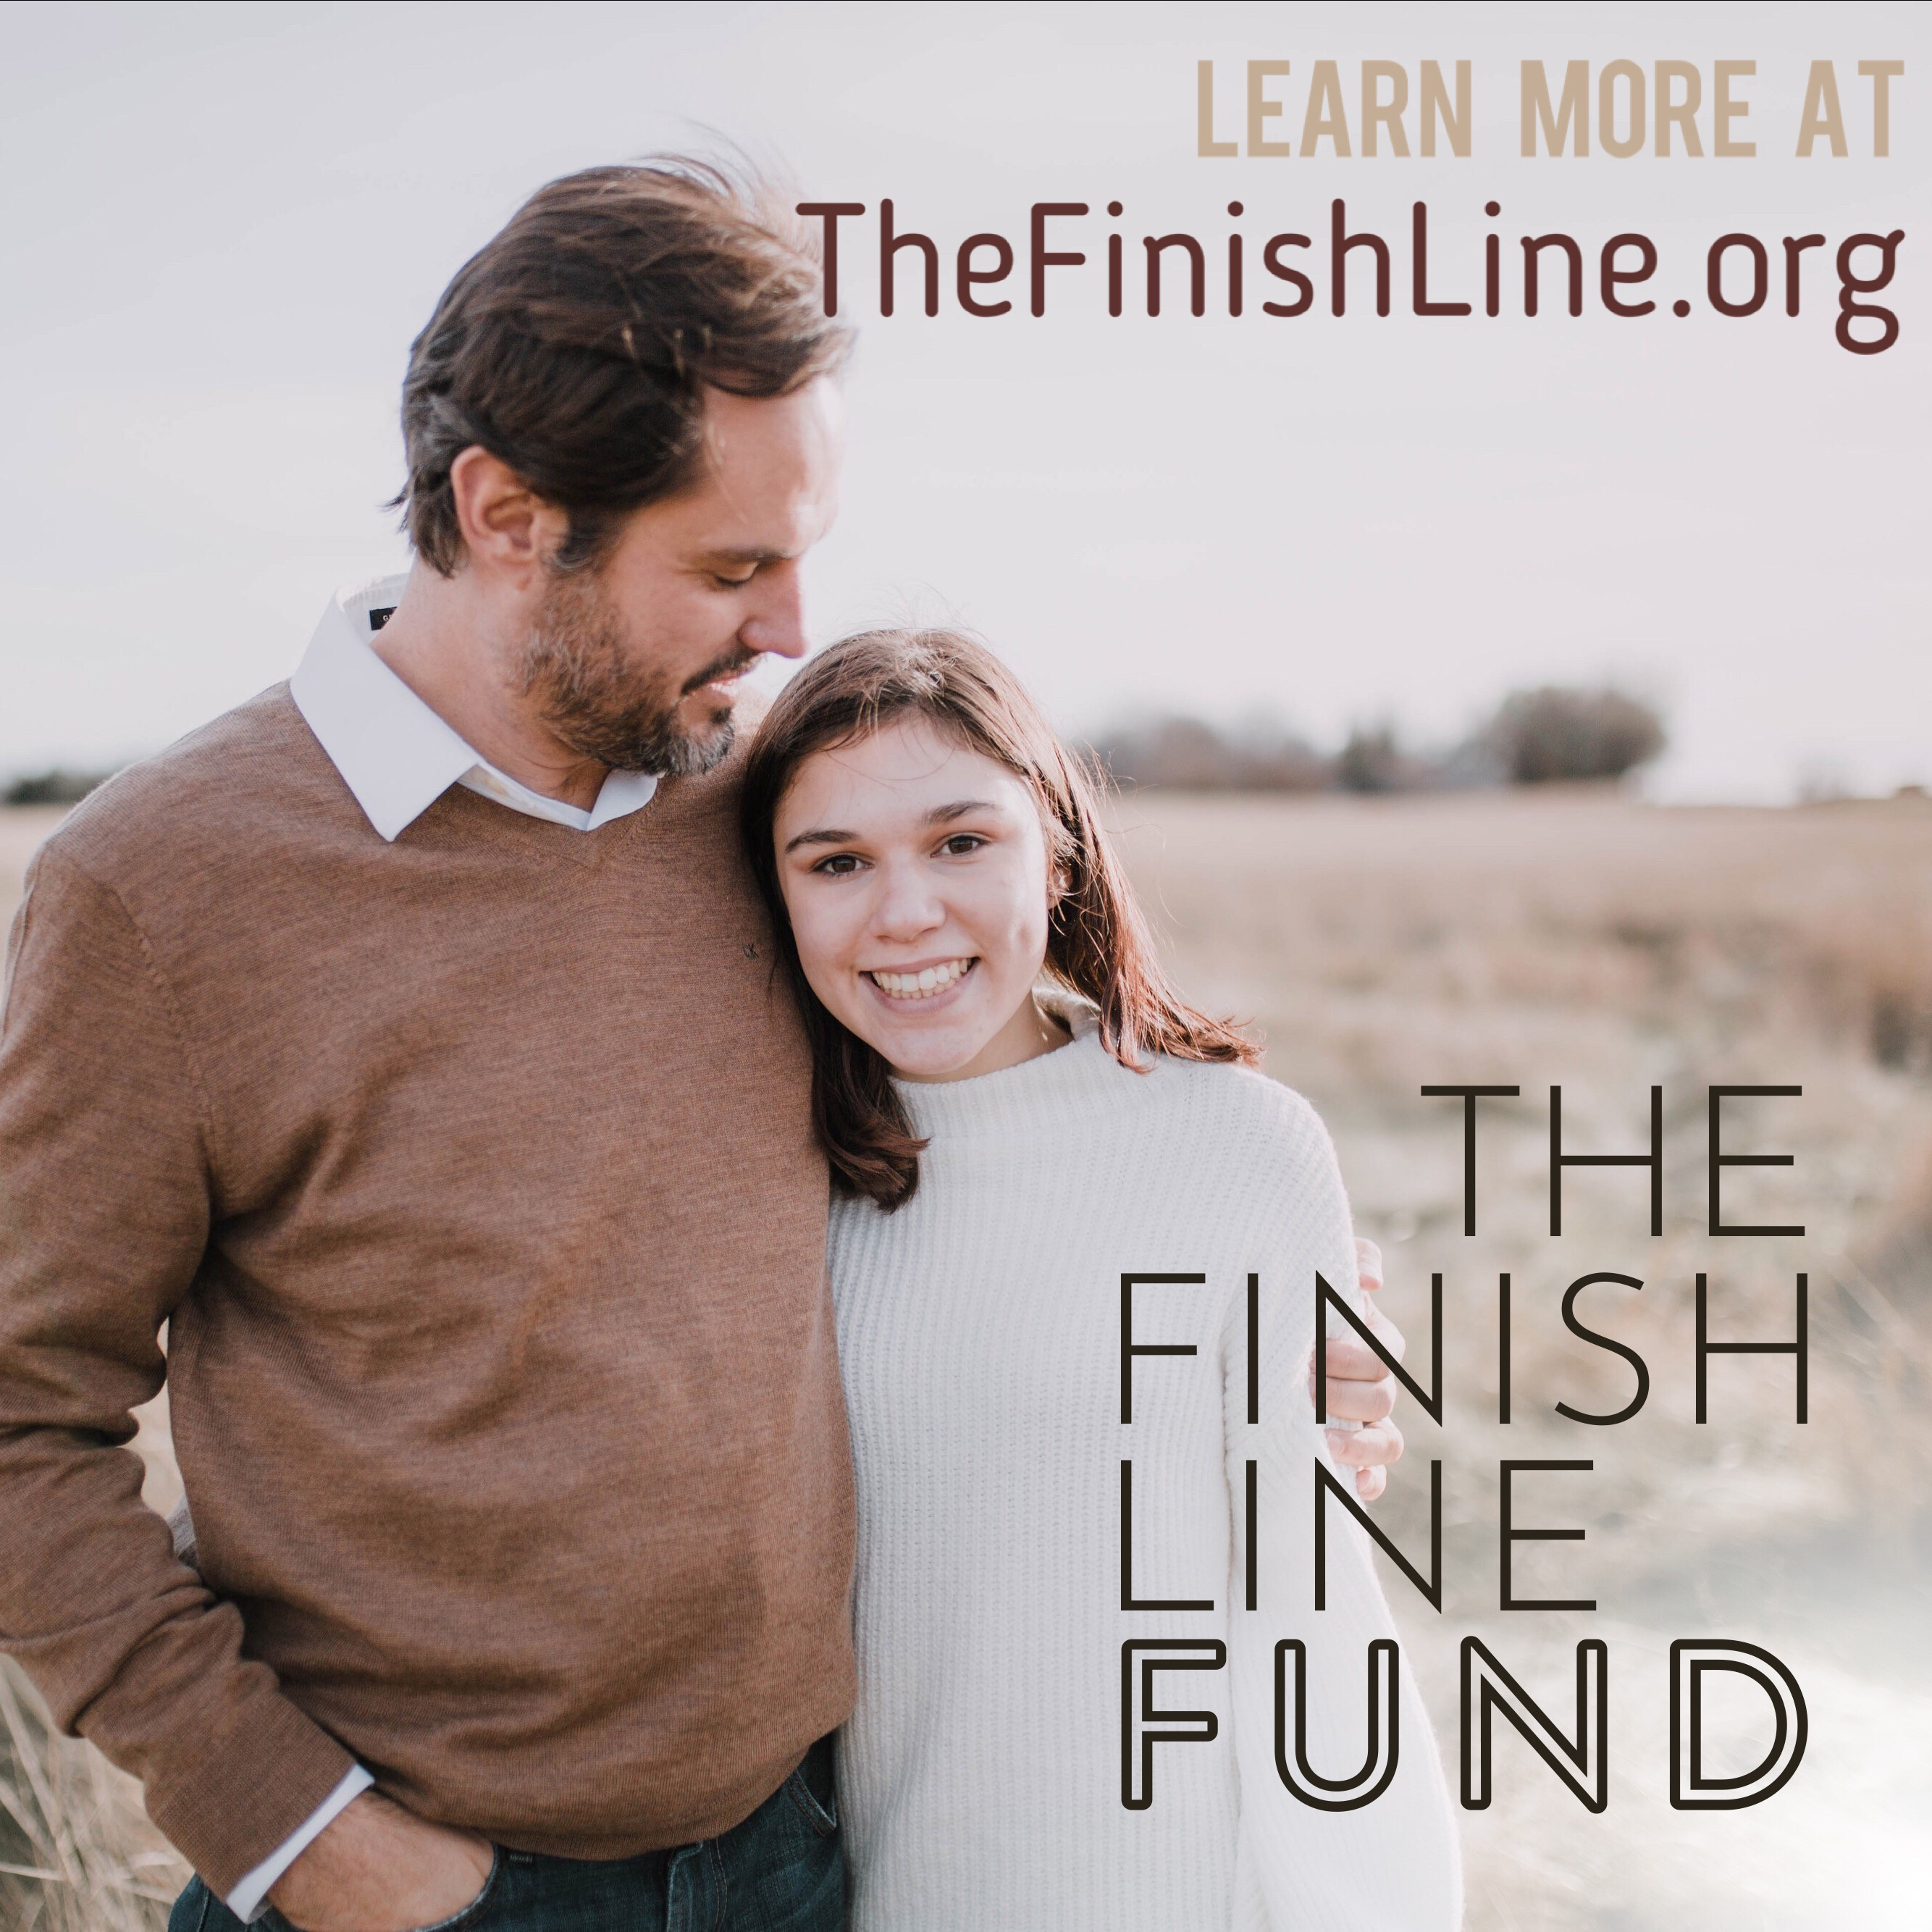 The Finish Line Fund